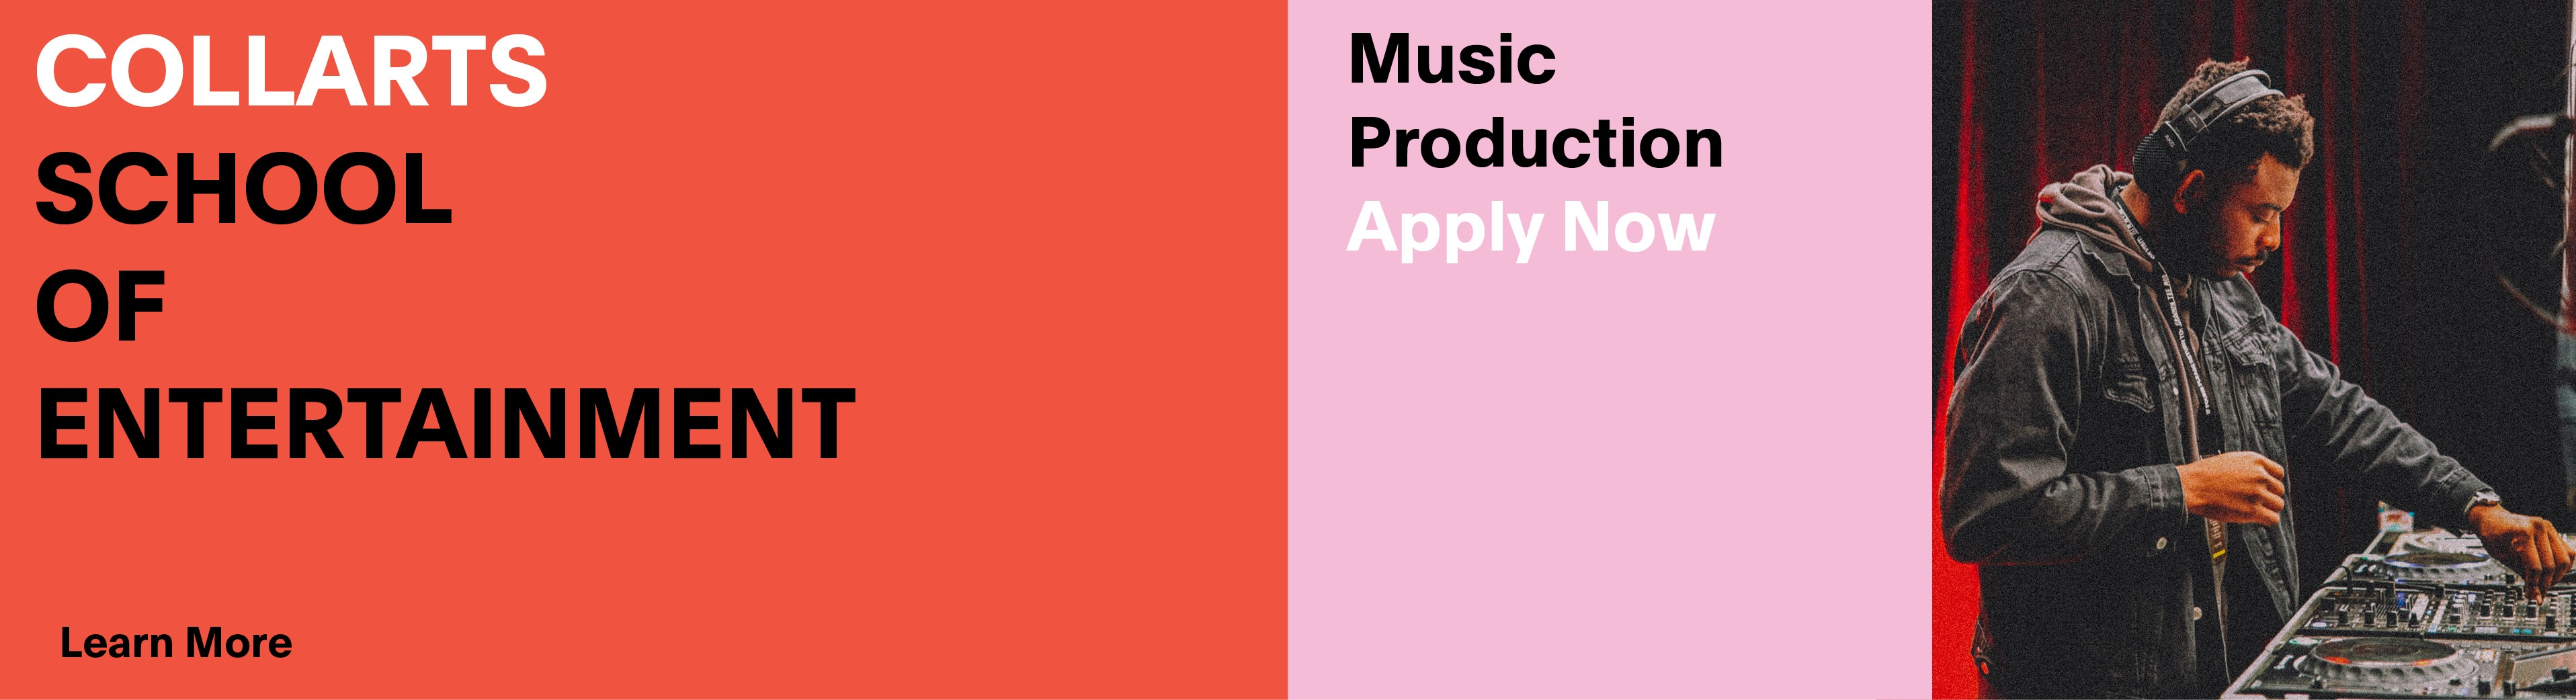 Music Production - Apply Now